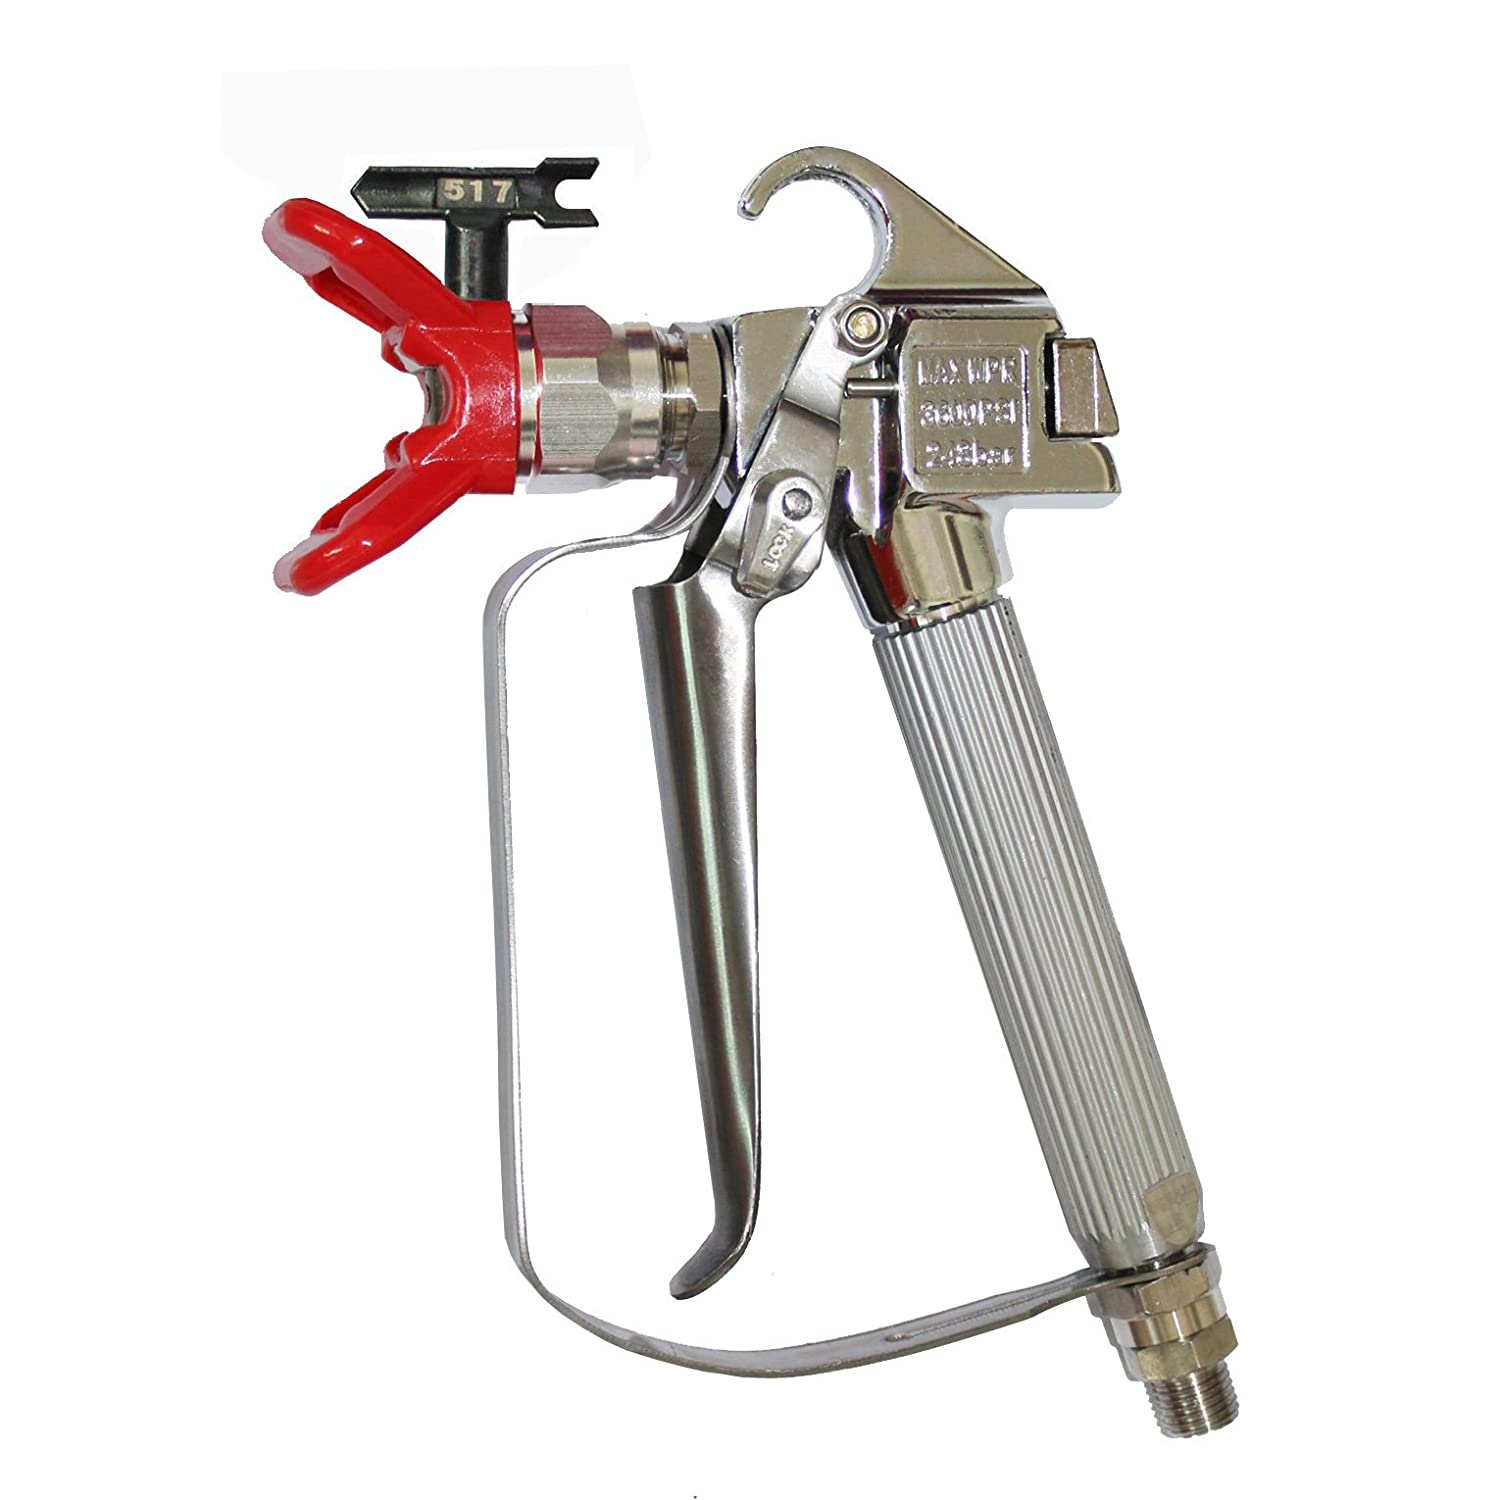 DUSICHIN DUS-036 Airless Paint Spray Gun, High Pressure 3600 PSI 517 TIP Swivel Joint